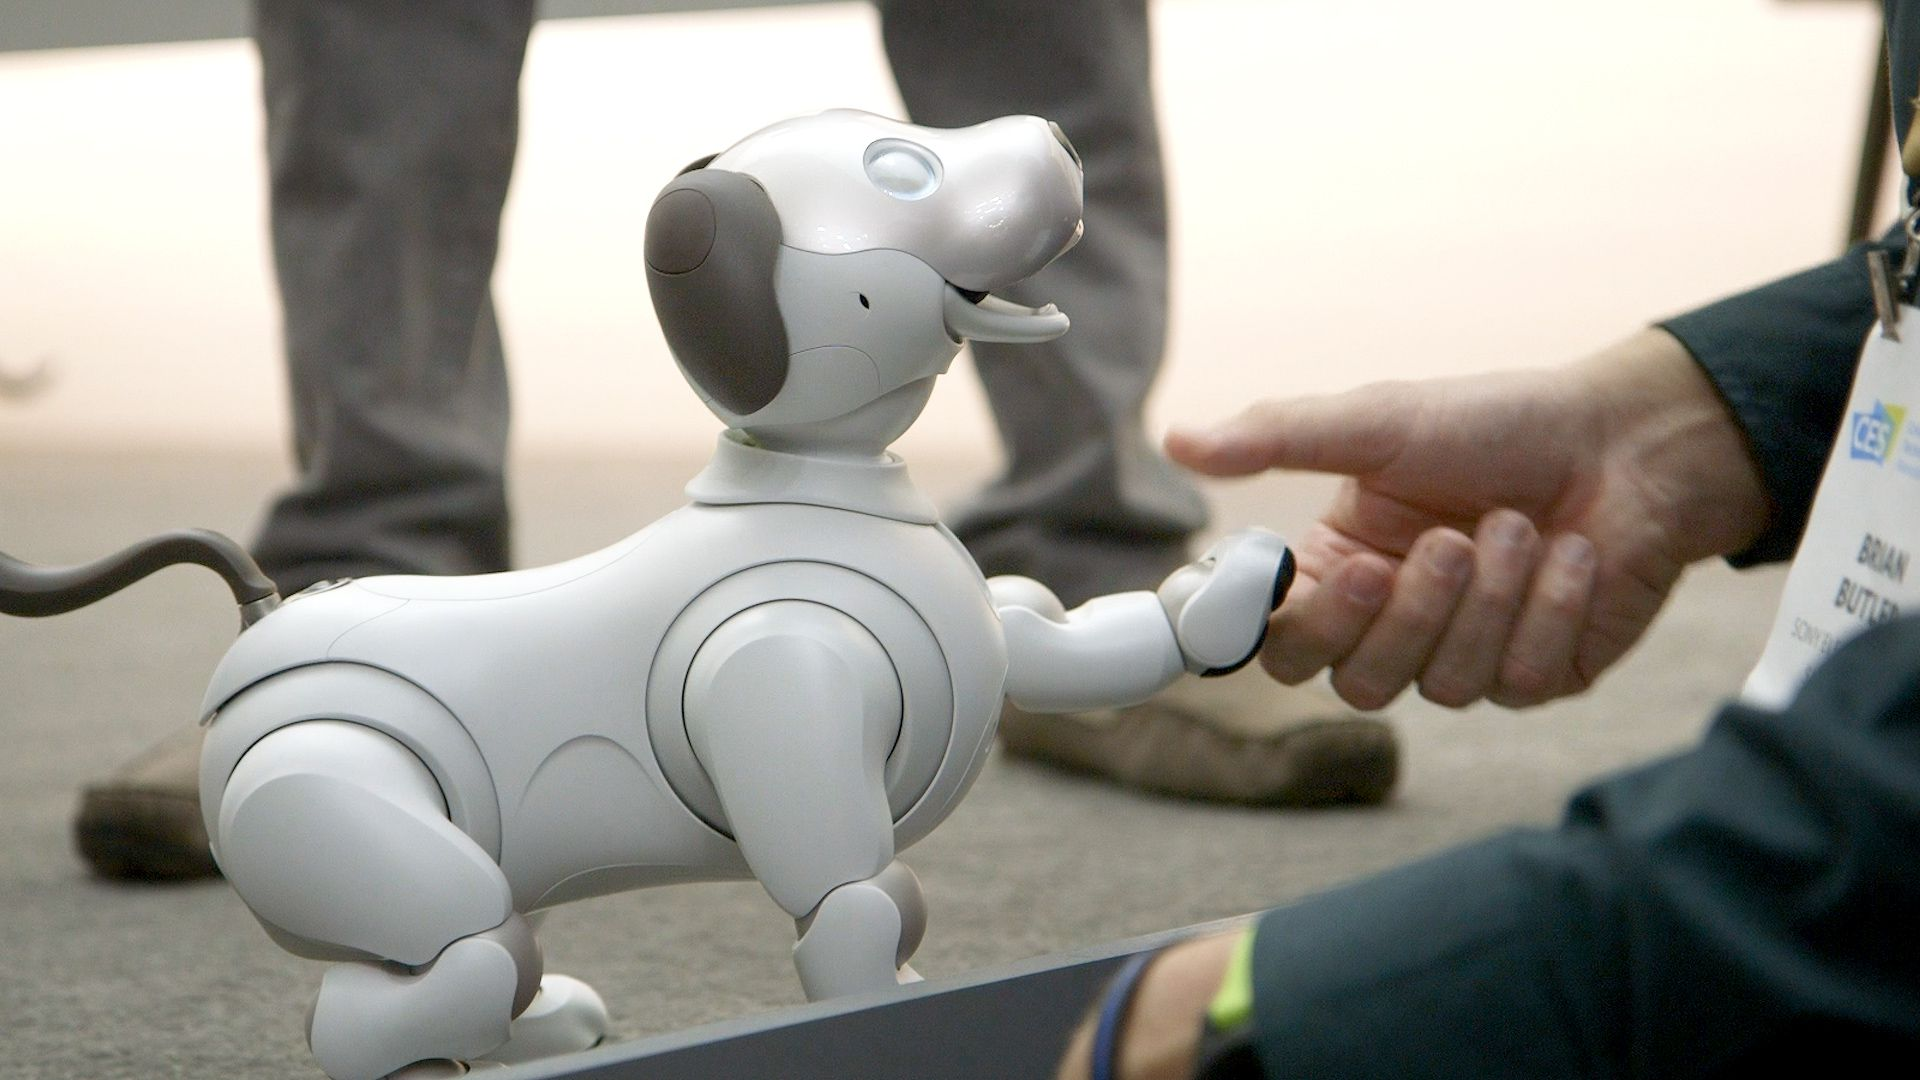 I played with Sony's new Aibo robot dog, and I miss it